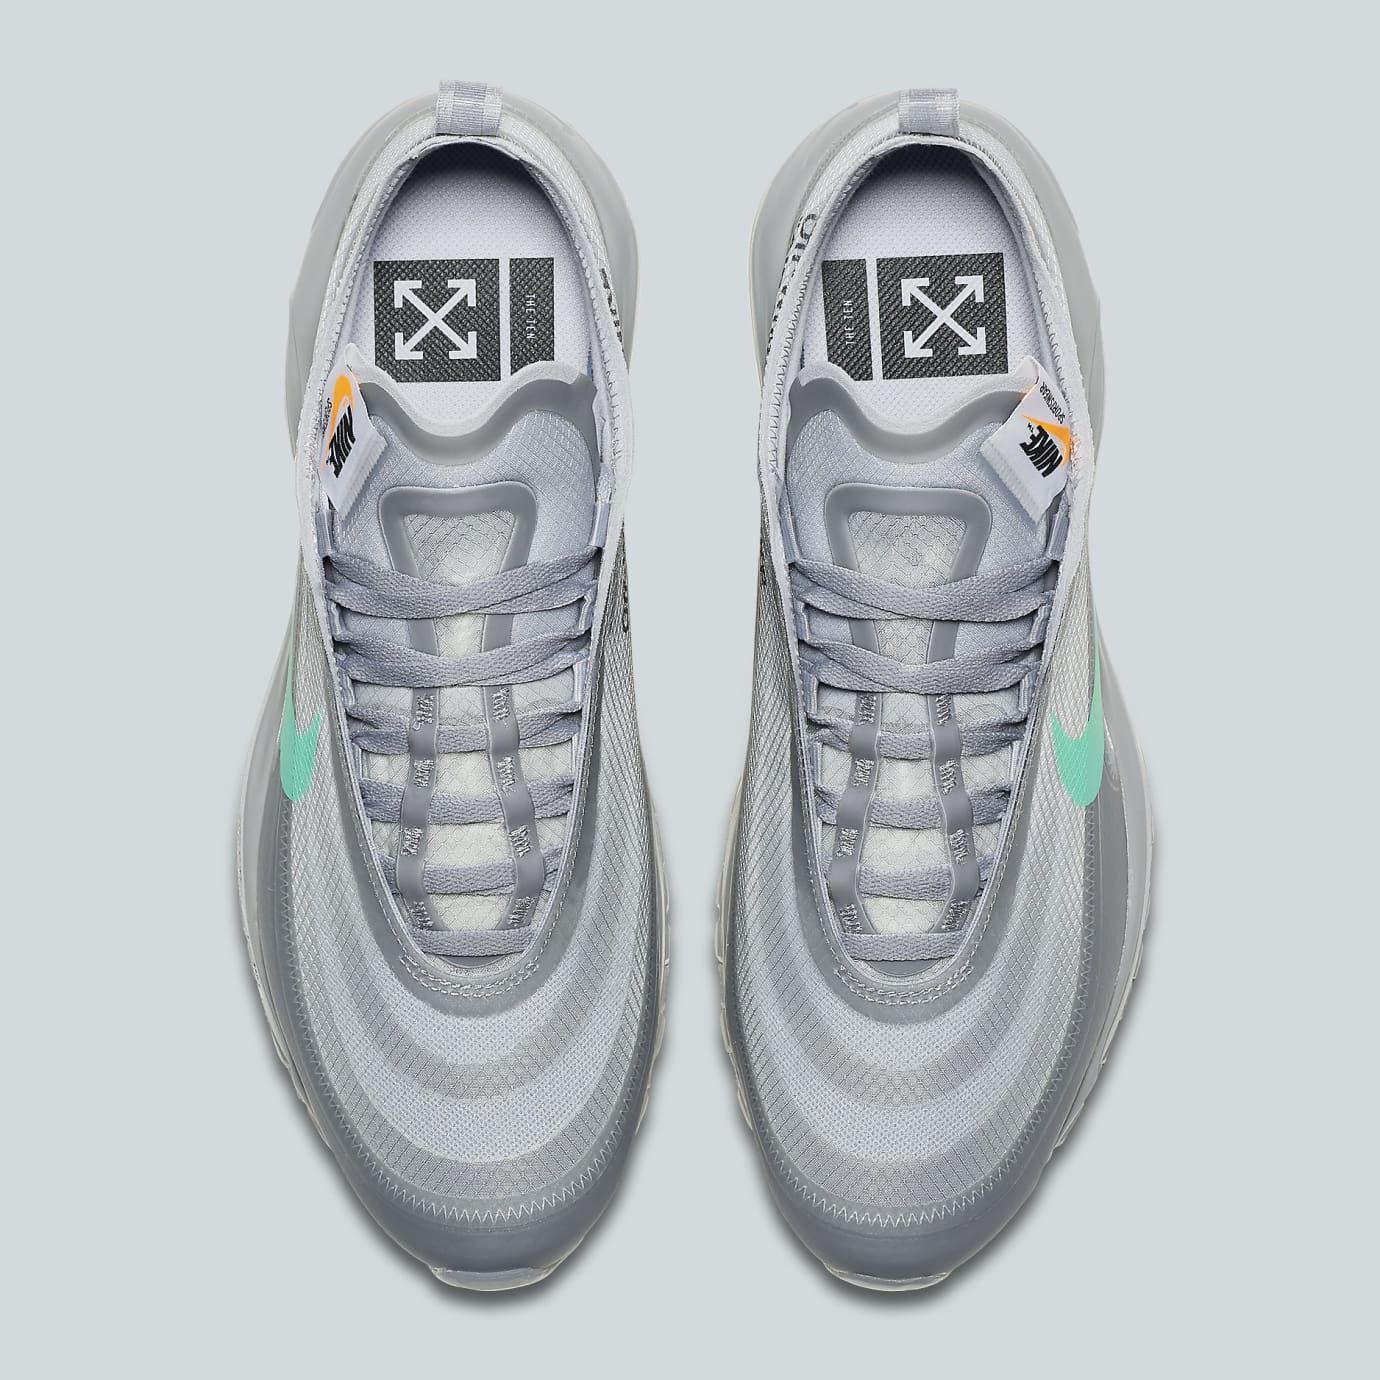 Off-White x Nike Air Max 97 Off-White Wolf Grey White Menta Release Date  AJ4585-101 Top 80709de85